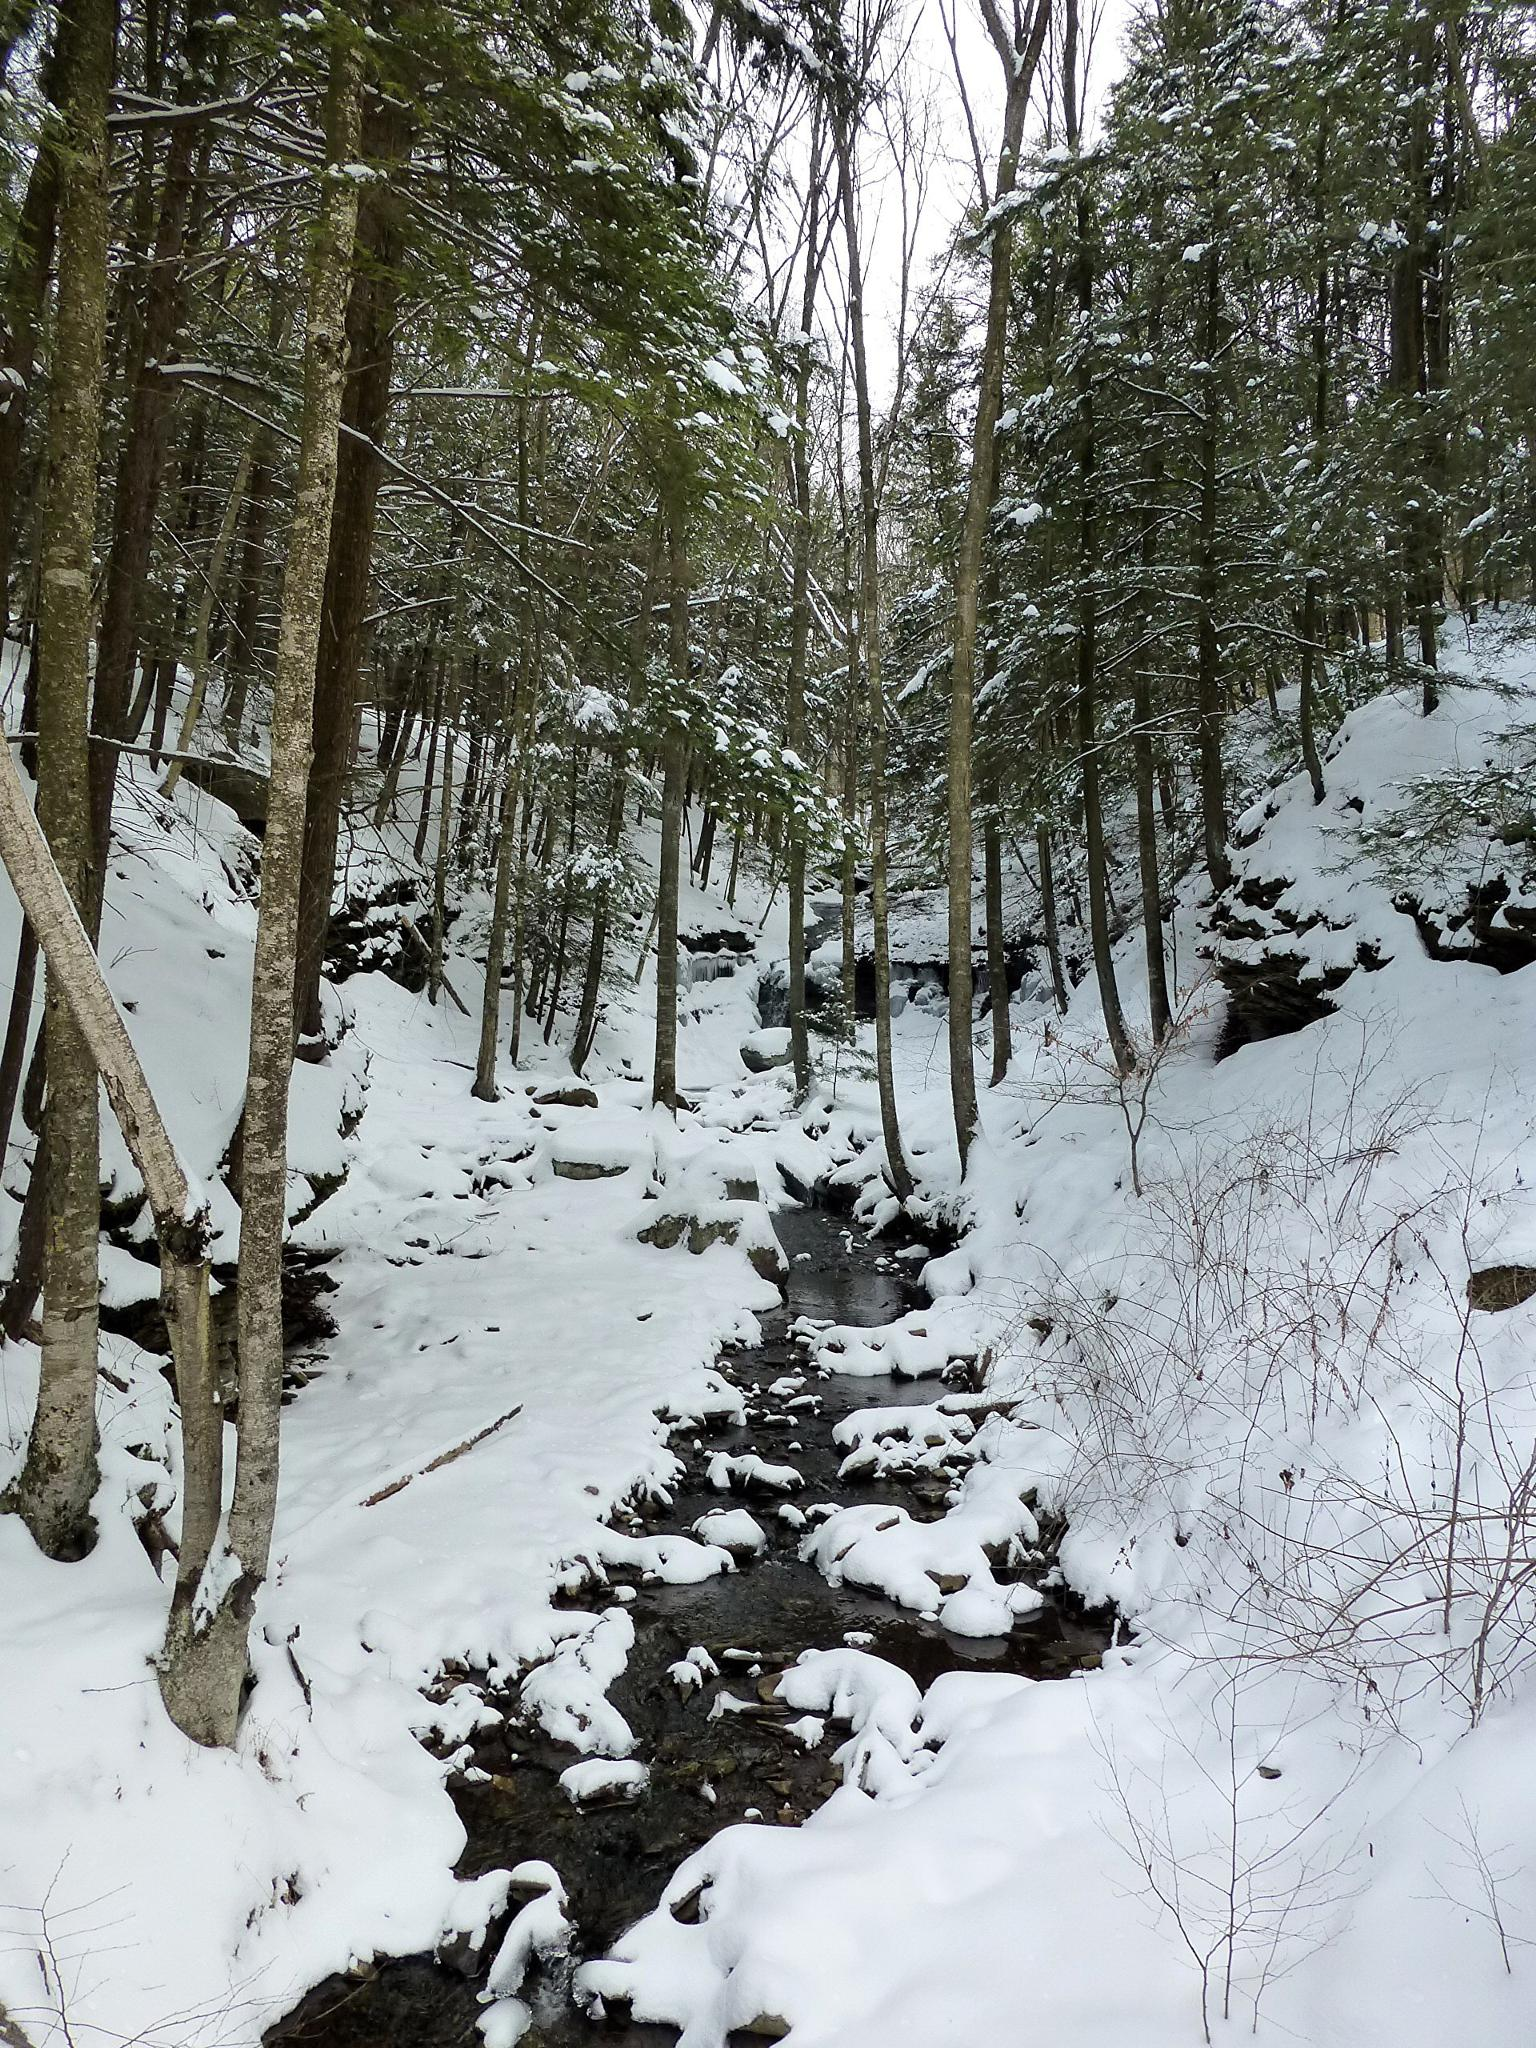 Winter in Worlds End State Park by Terri Scache Harris